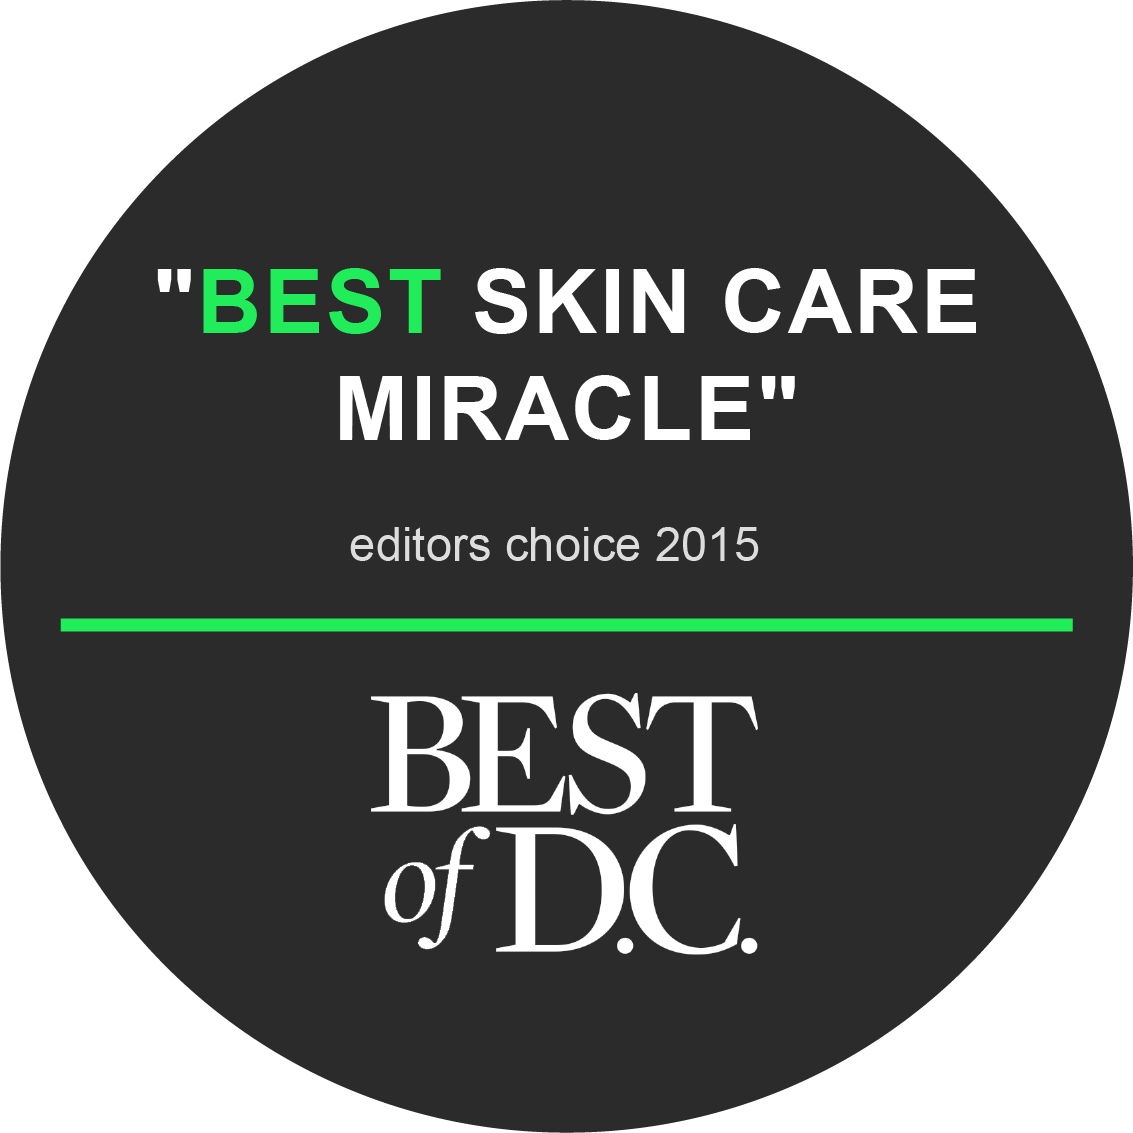 Best of D.C. - Best Skin Care Miracle, Editor's Choice 2015